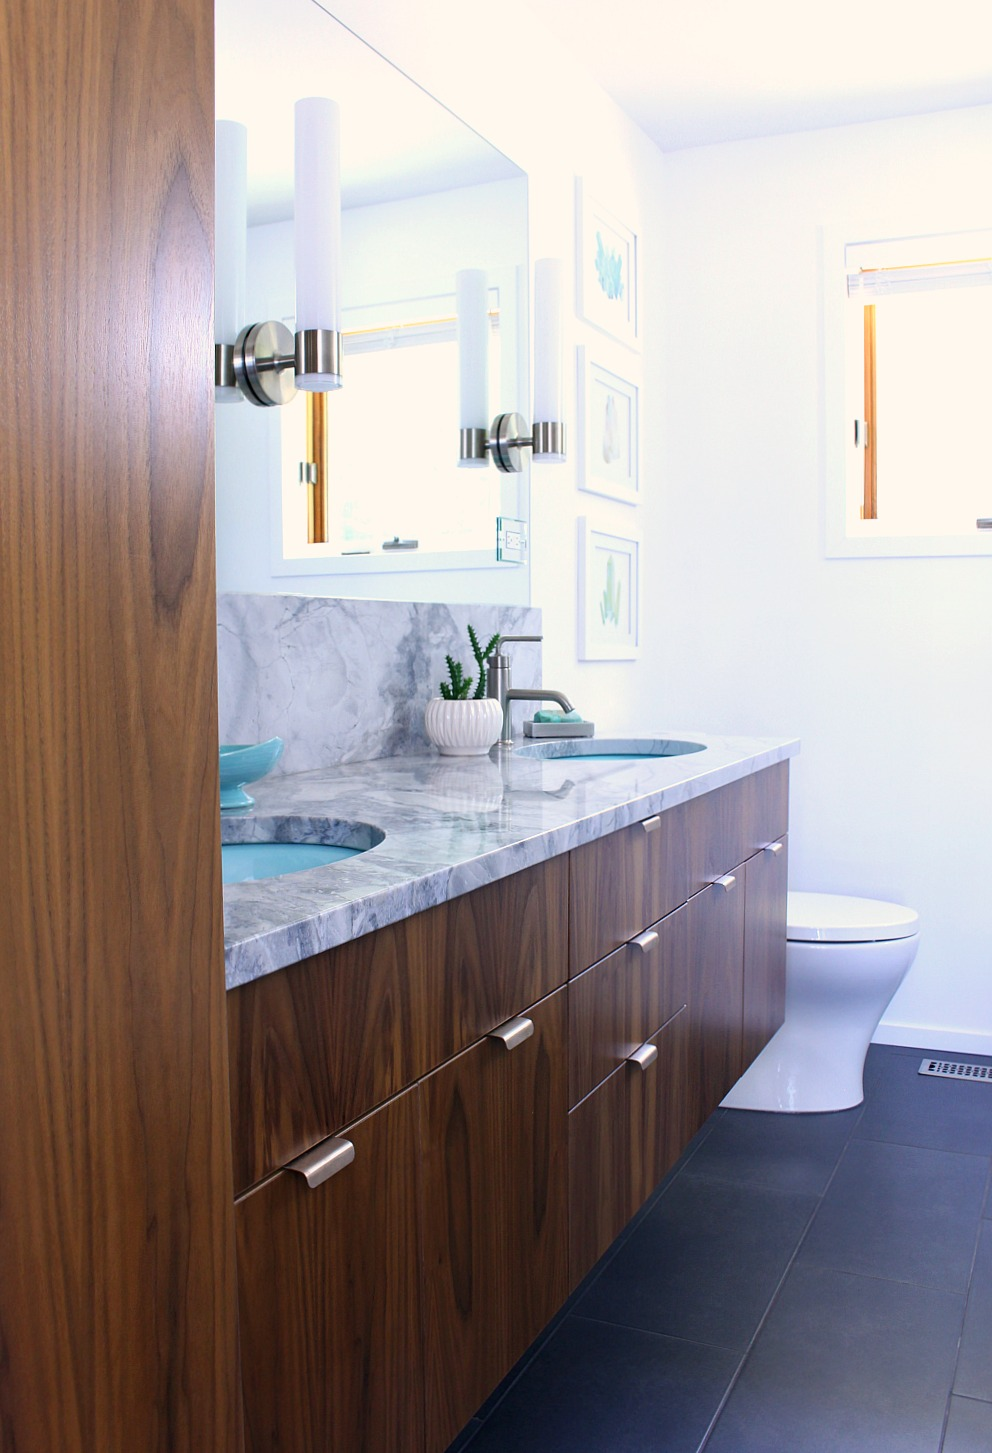 Remodel Bathroom Modern a mid-century modern inspired bathroom renovation - before + after